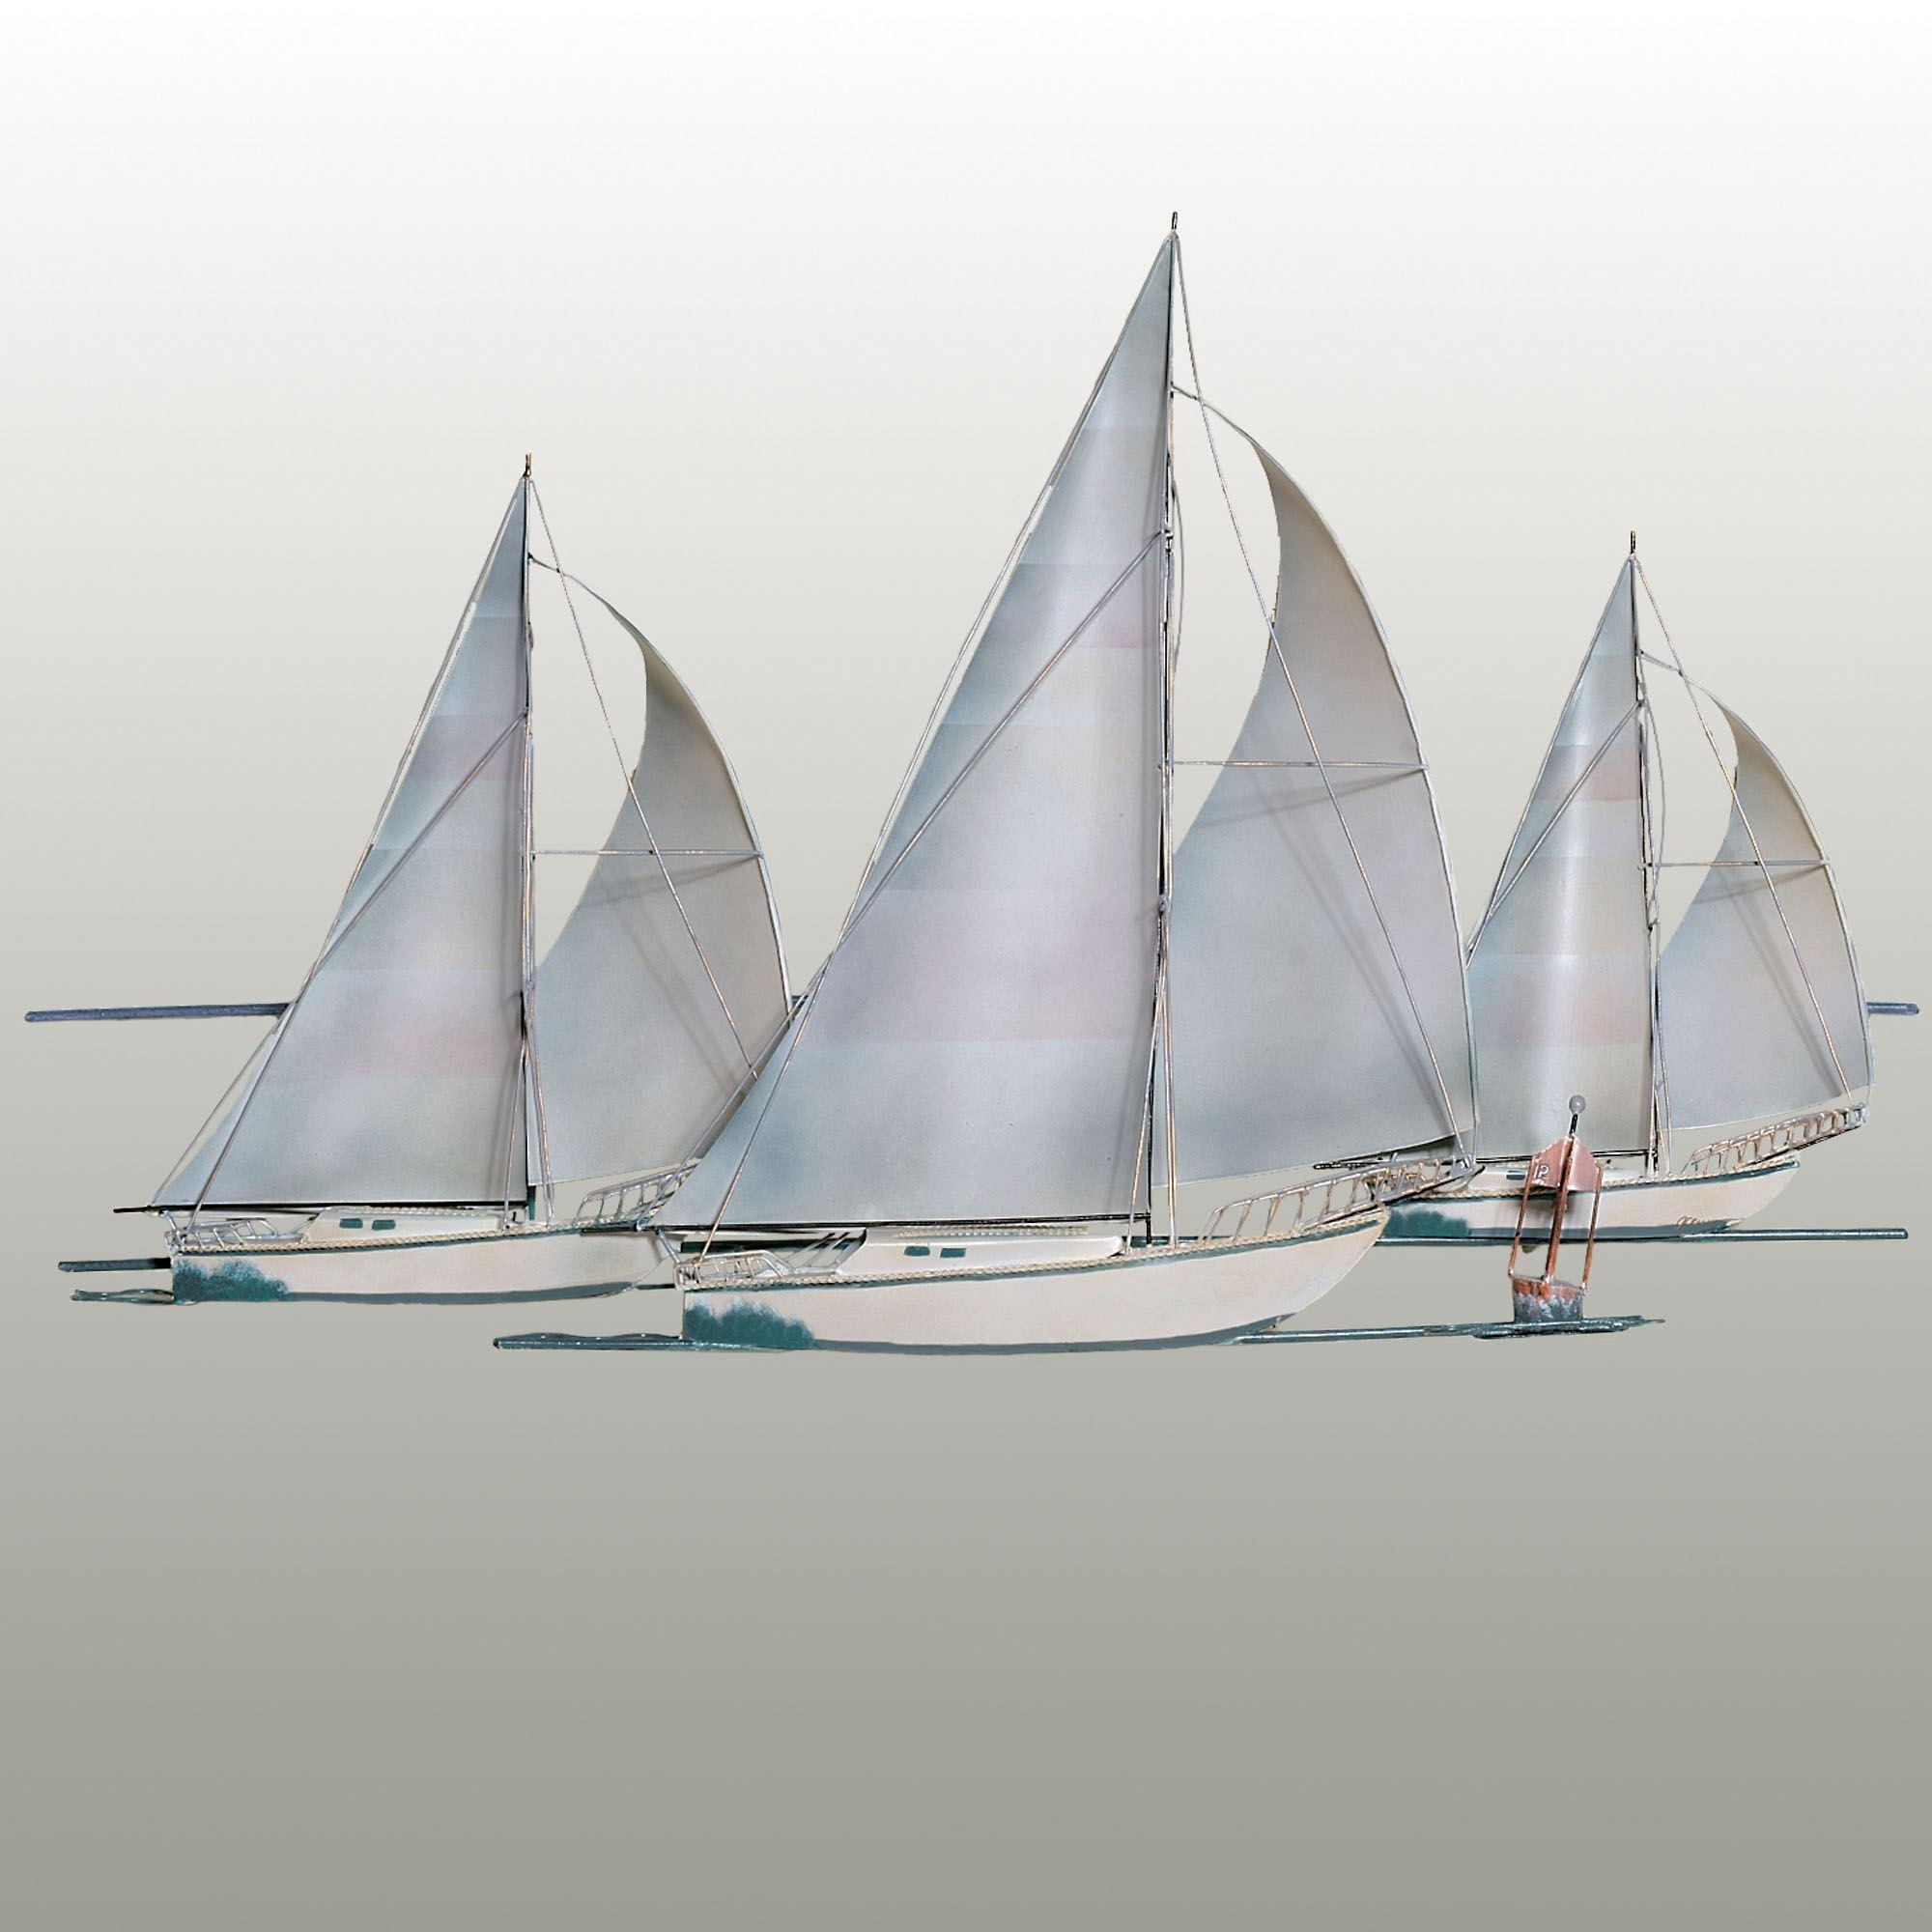 Metal Wall Art Sculptures | Touch Of Class Pertaining To Sailboat Metal Wall Art (View 6 of 20)